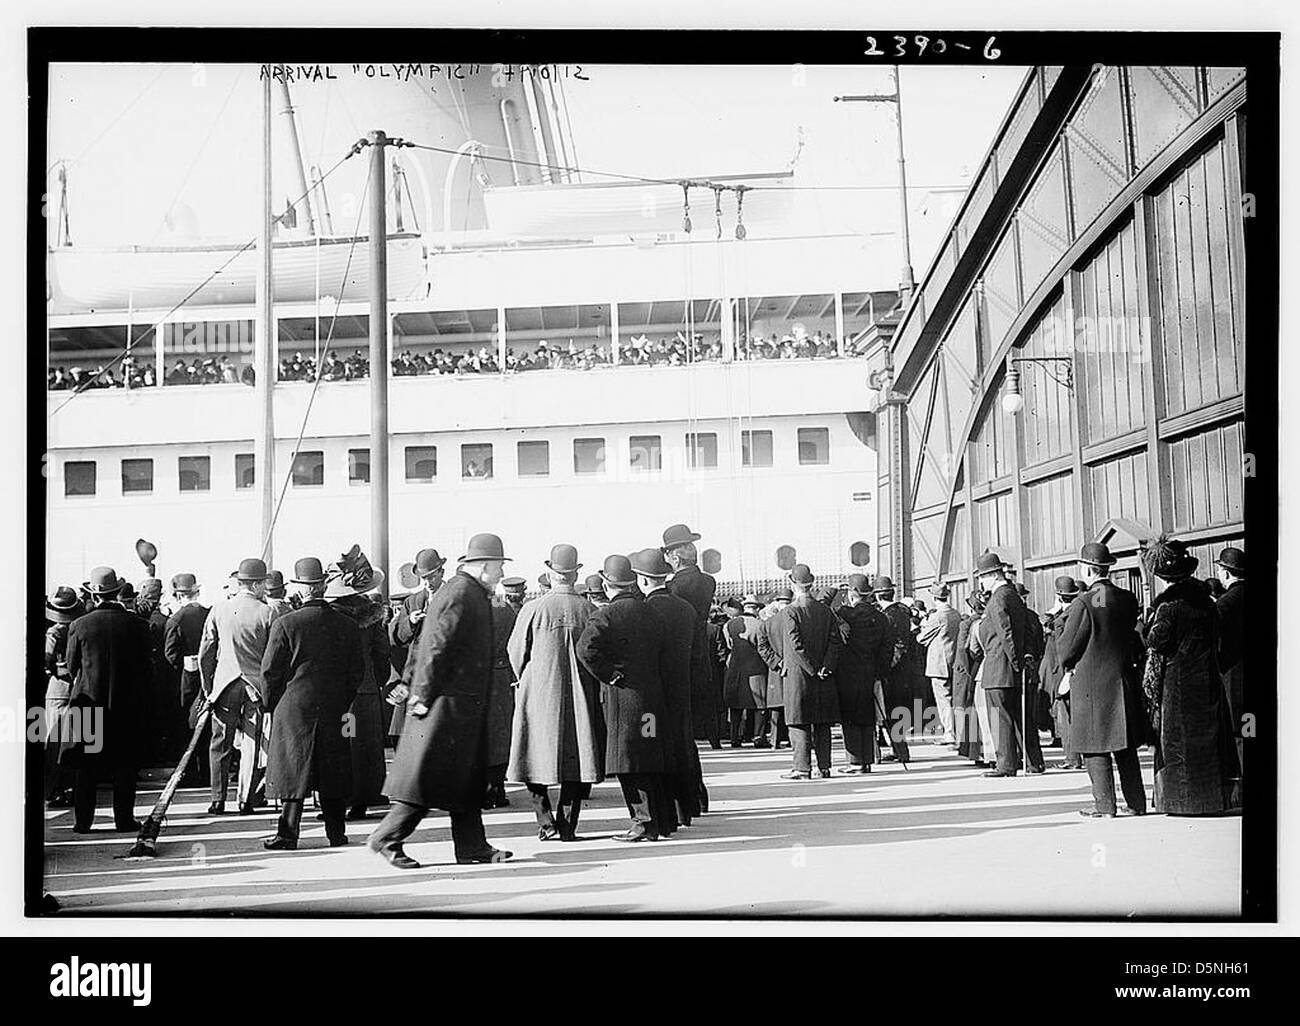 Arrival OLYMPIC (LOC) - Stock Image